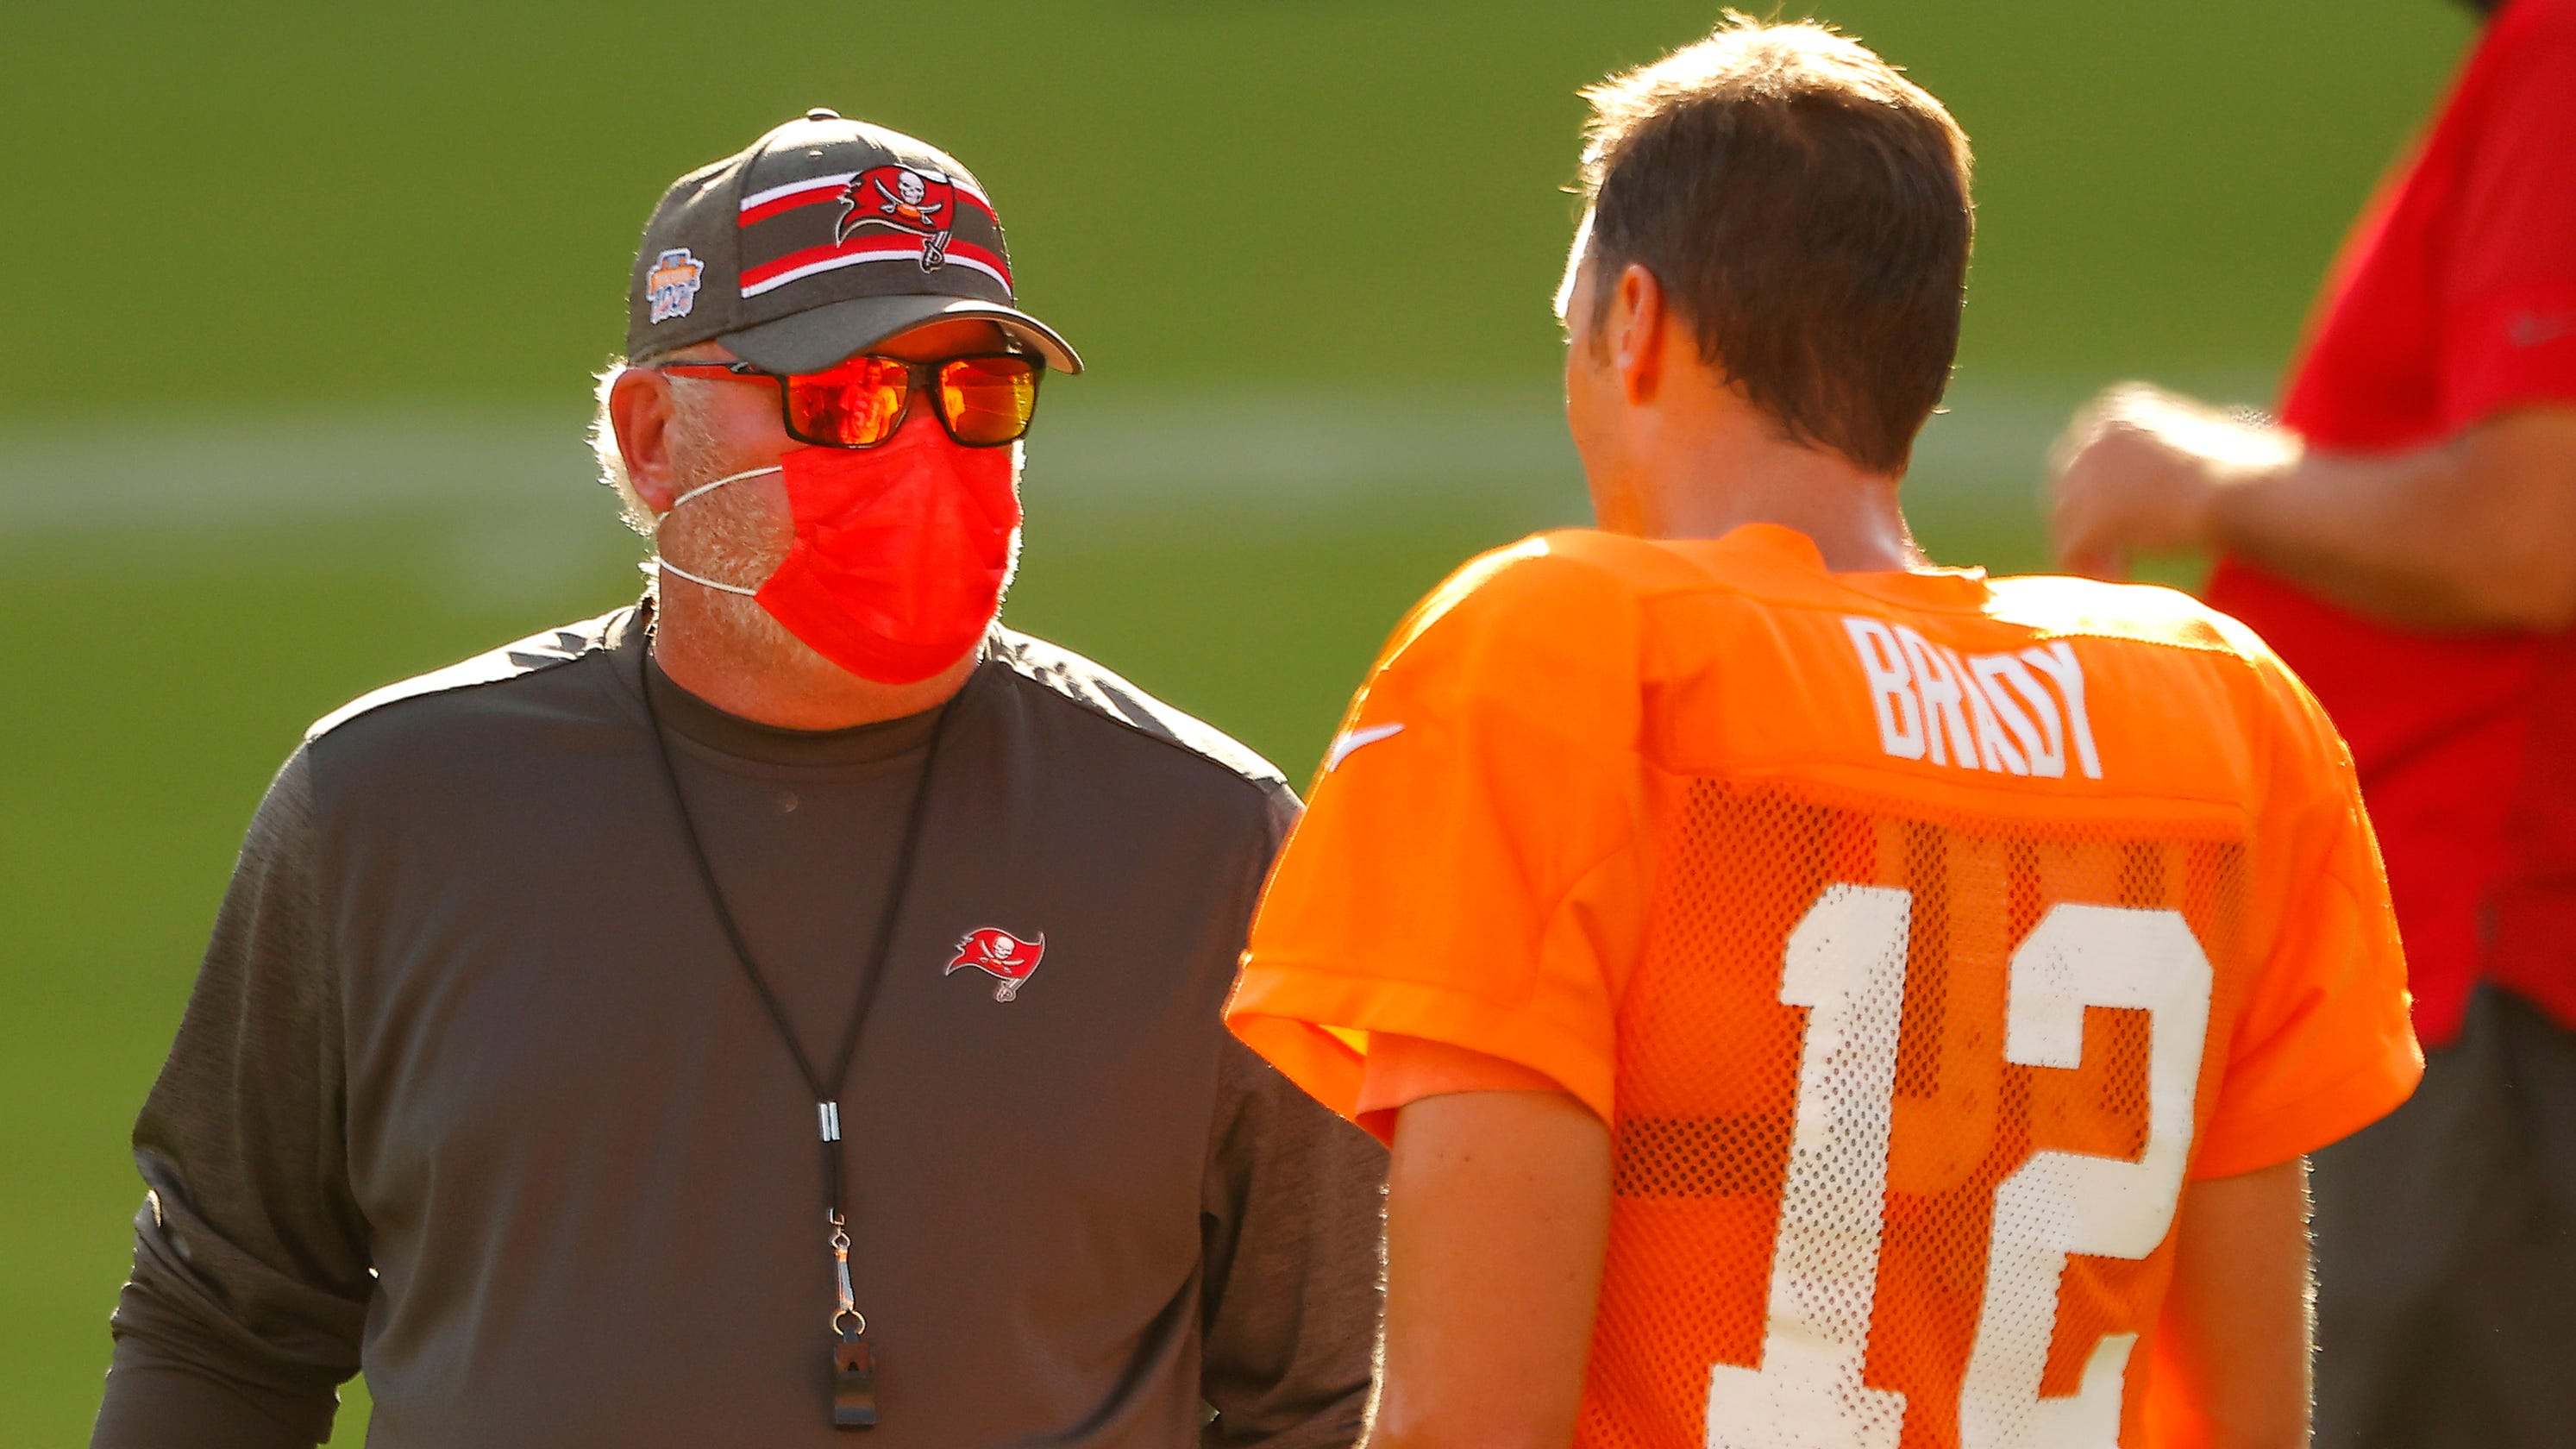 Bruce Arians says he, Tom Brady 'fine' after Bucs coach criticizes QB for Week 1 INTs